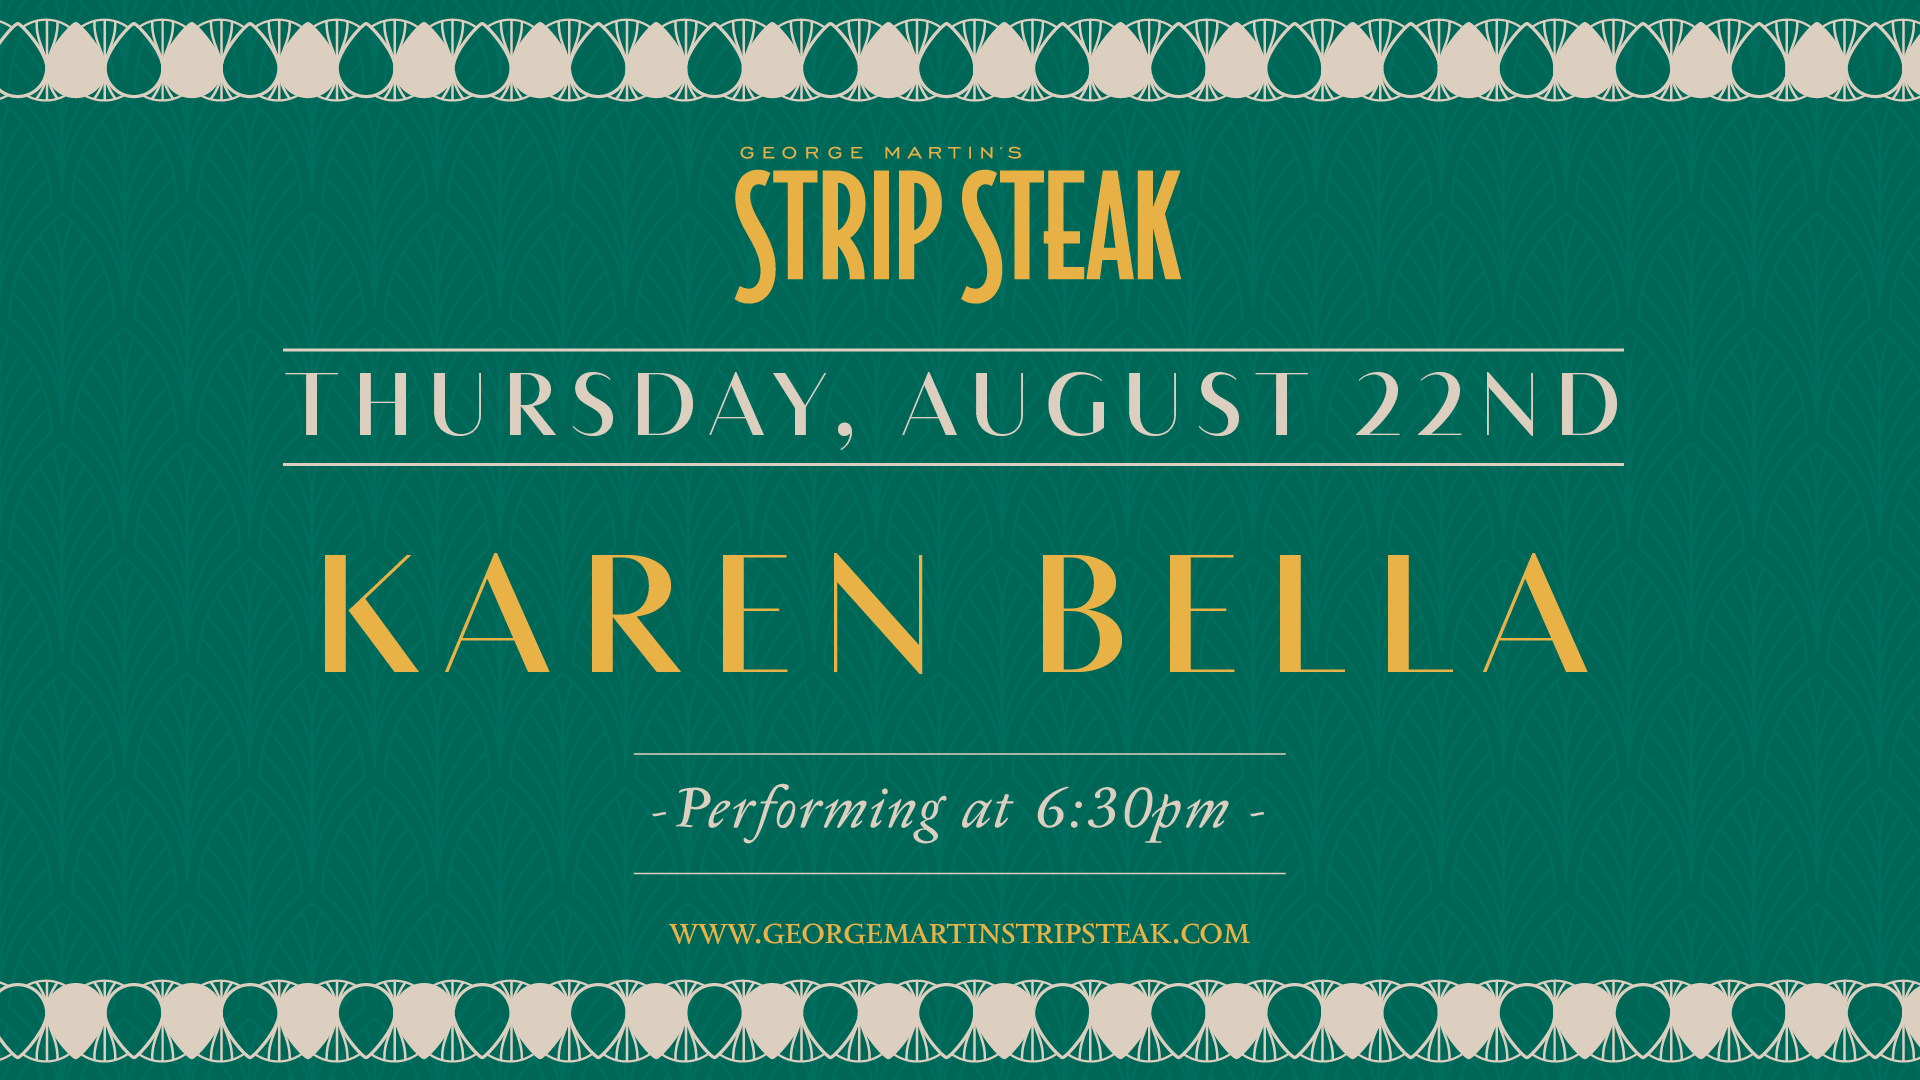 Flyer for live music with Karen Bella on August 22nd at 6:30pm